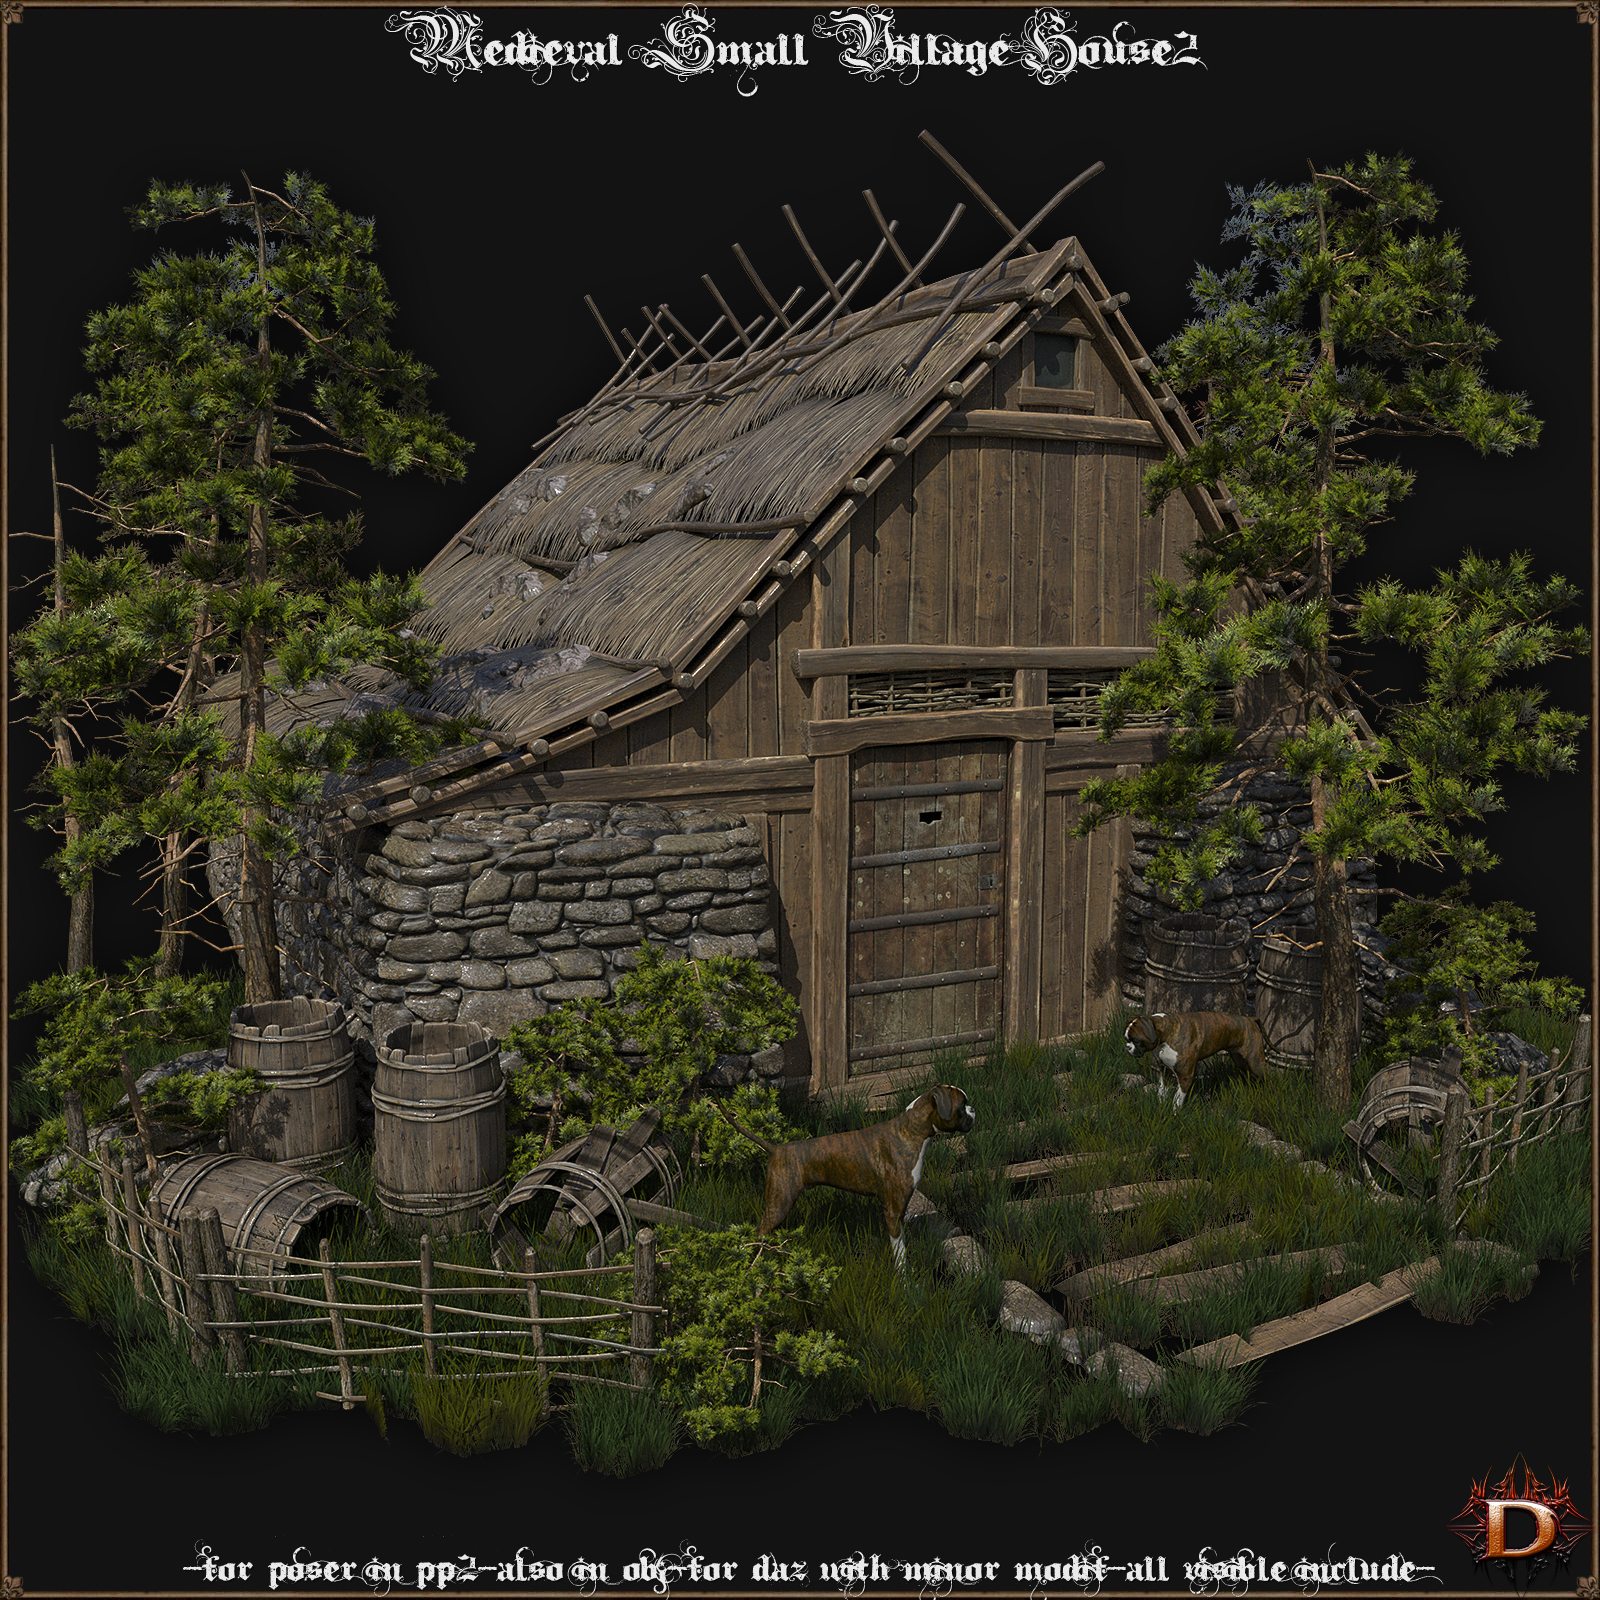 Medieval Small Village House2